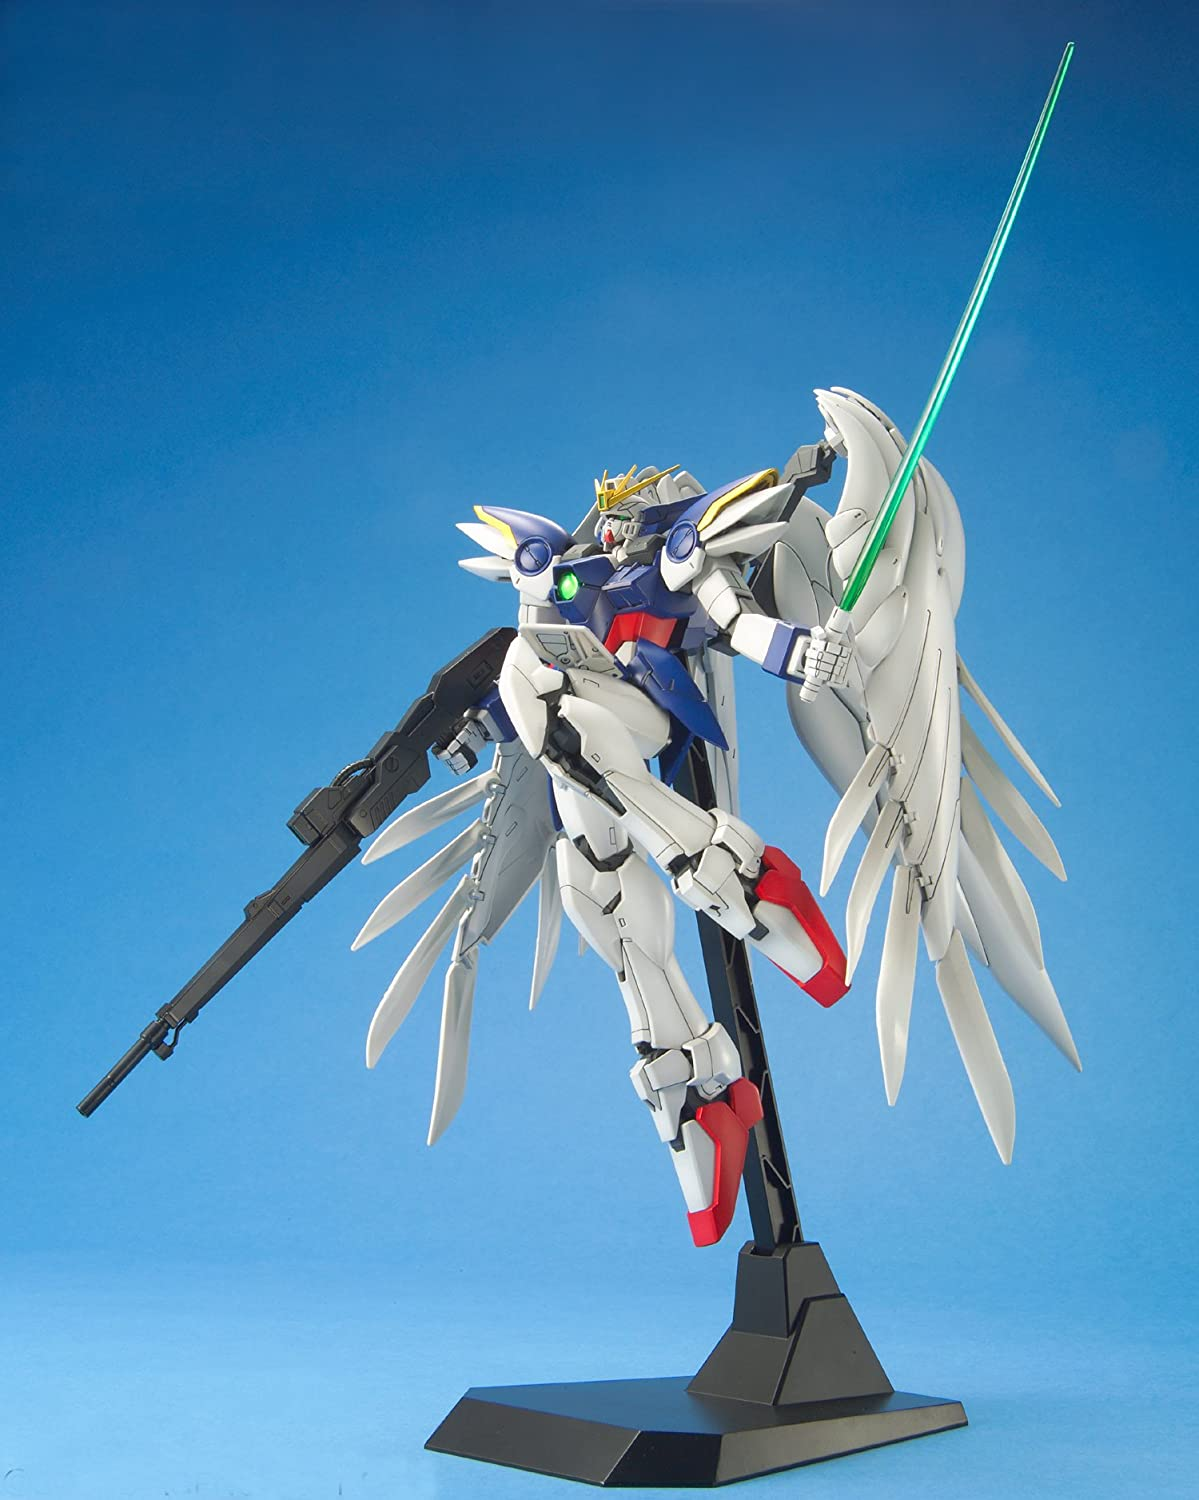 Bandai Hobby Wing Gundam Zero Version EW 1/100 - Master Grade (japan  import): Amazon.de: Spielzeug